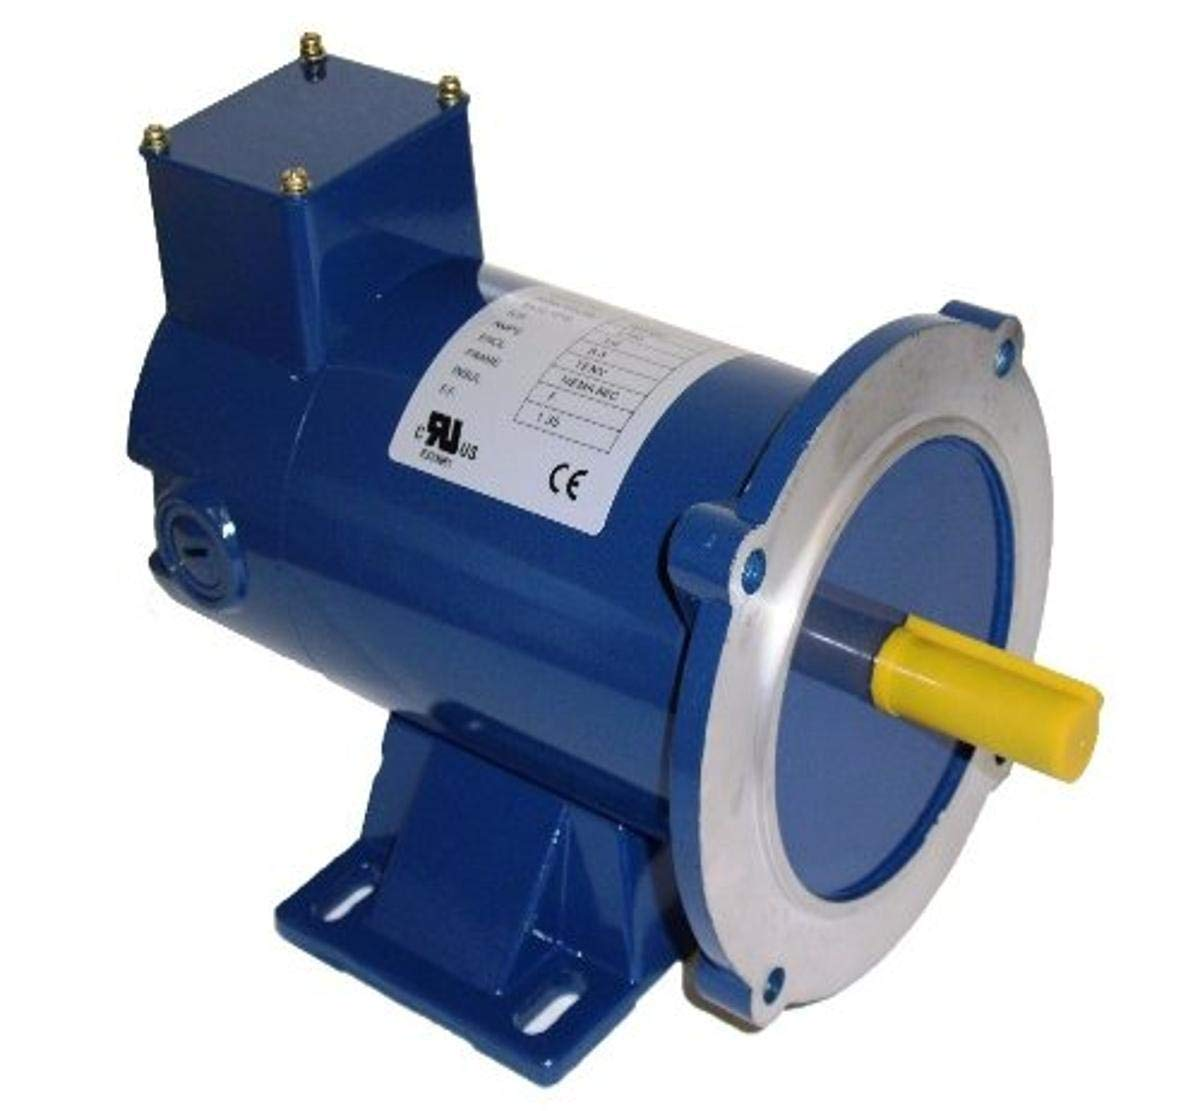 Hallmark Industries MD0502C DC Motor, 1/4 hp, 1800 RPM, 90VDC, 56C, TENV, with Foot